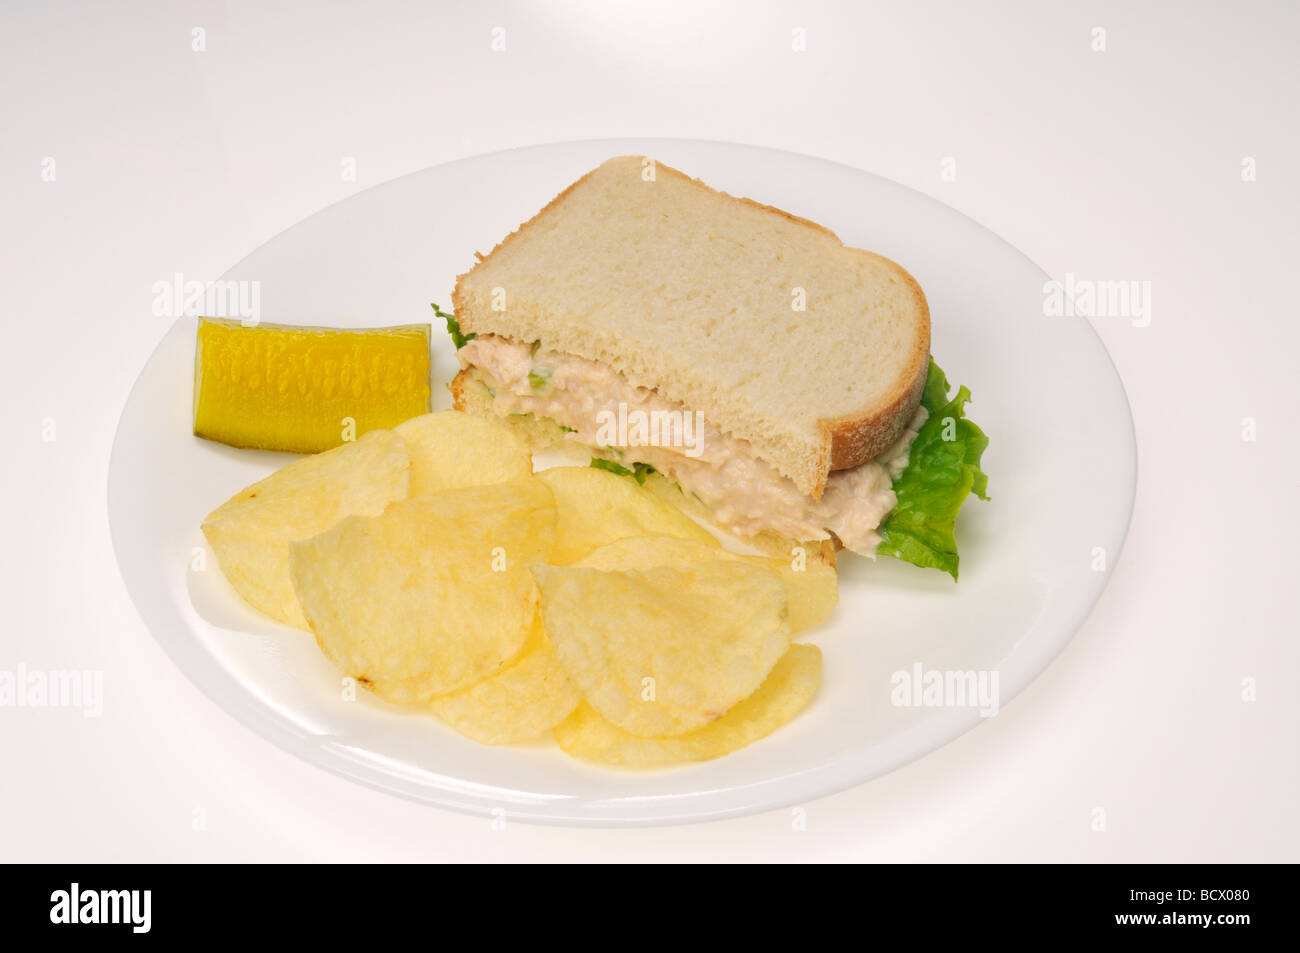 Tuna mayo sandwich with lettuce on white bread with pickle and potato chips - Stock Image